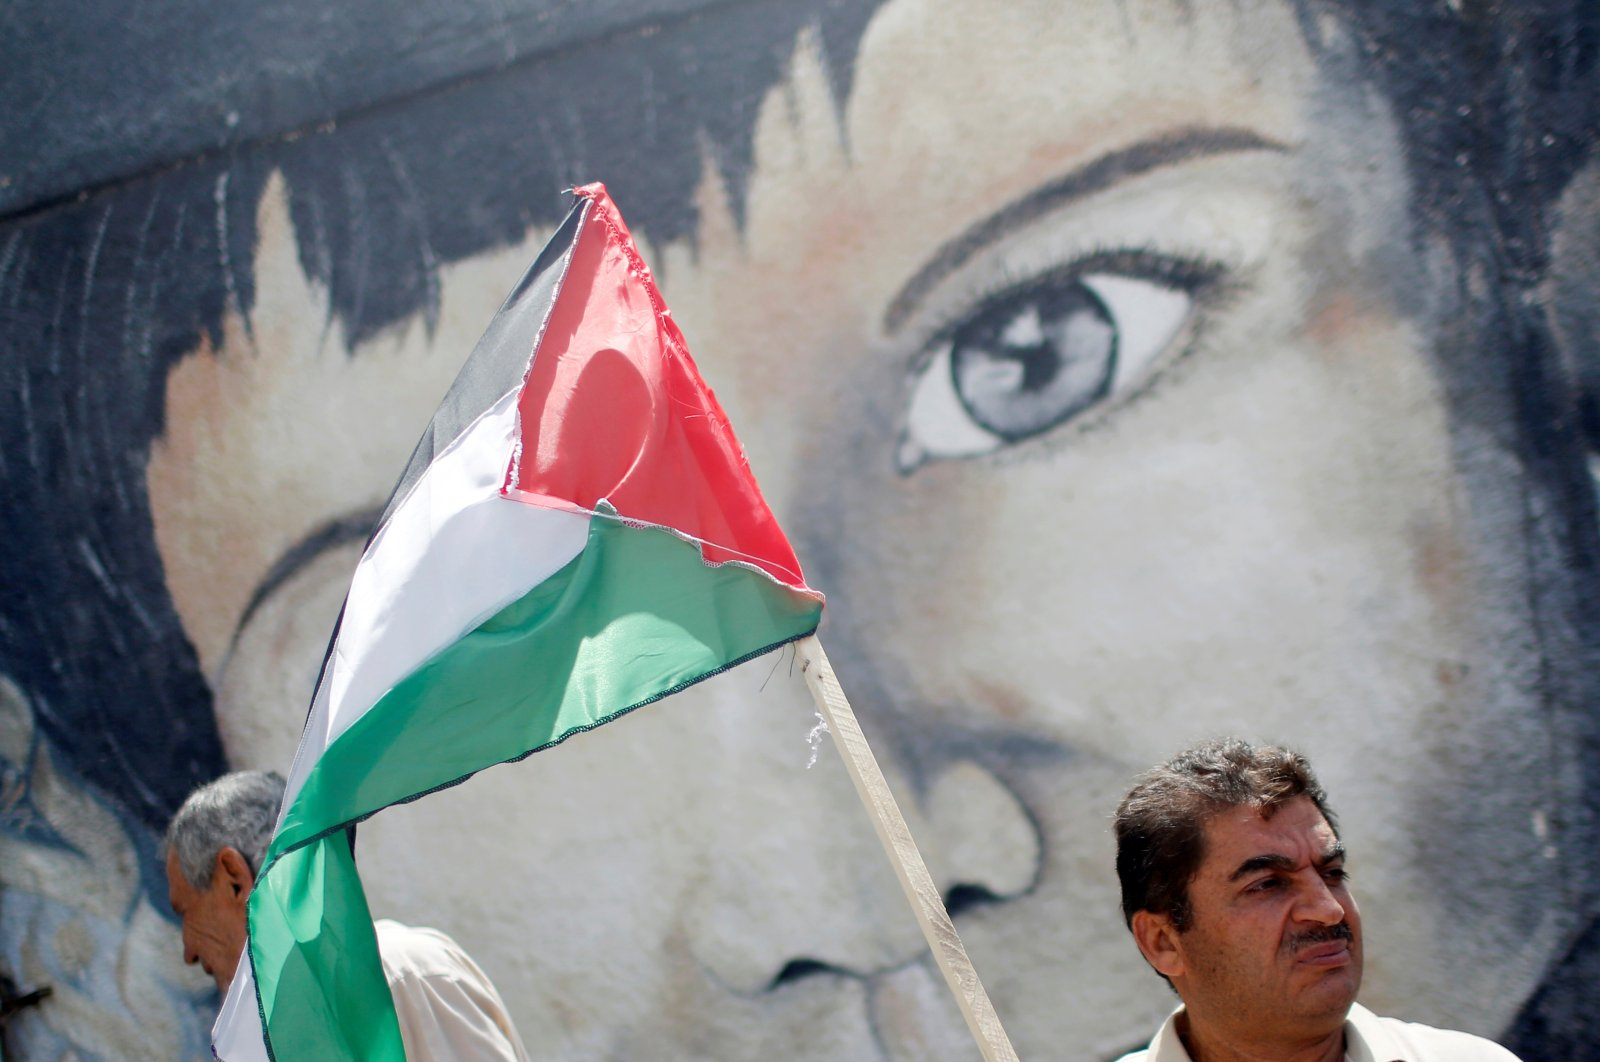 A demonstrator holding a Palestinian flag stands in front of a mural during a protest against Israel's plan to annex parts of the occupied West Bank, Gaza City, Palestine, June 22, 2020. (Reuters Photo)